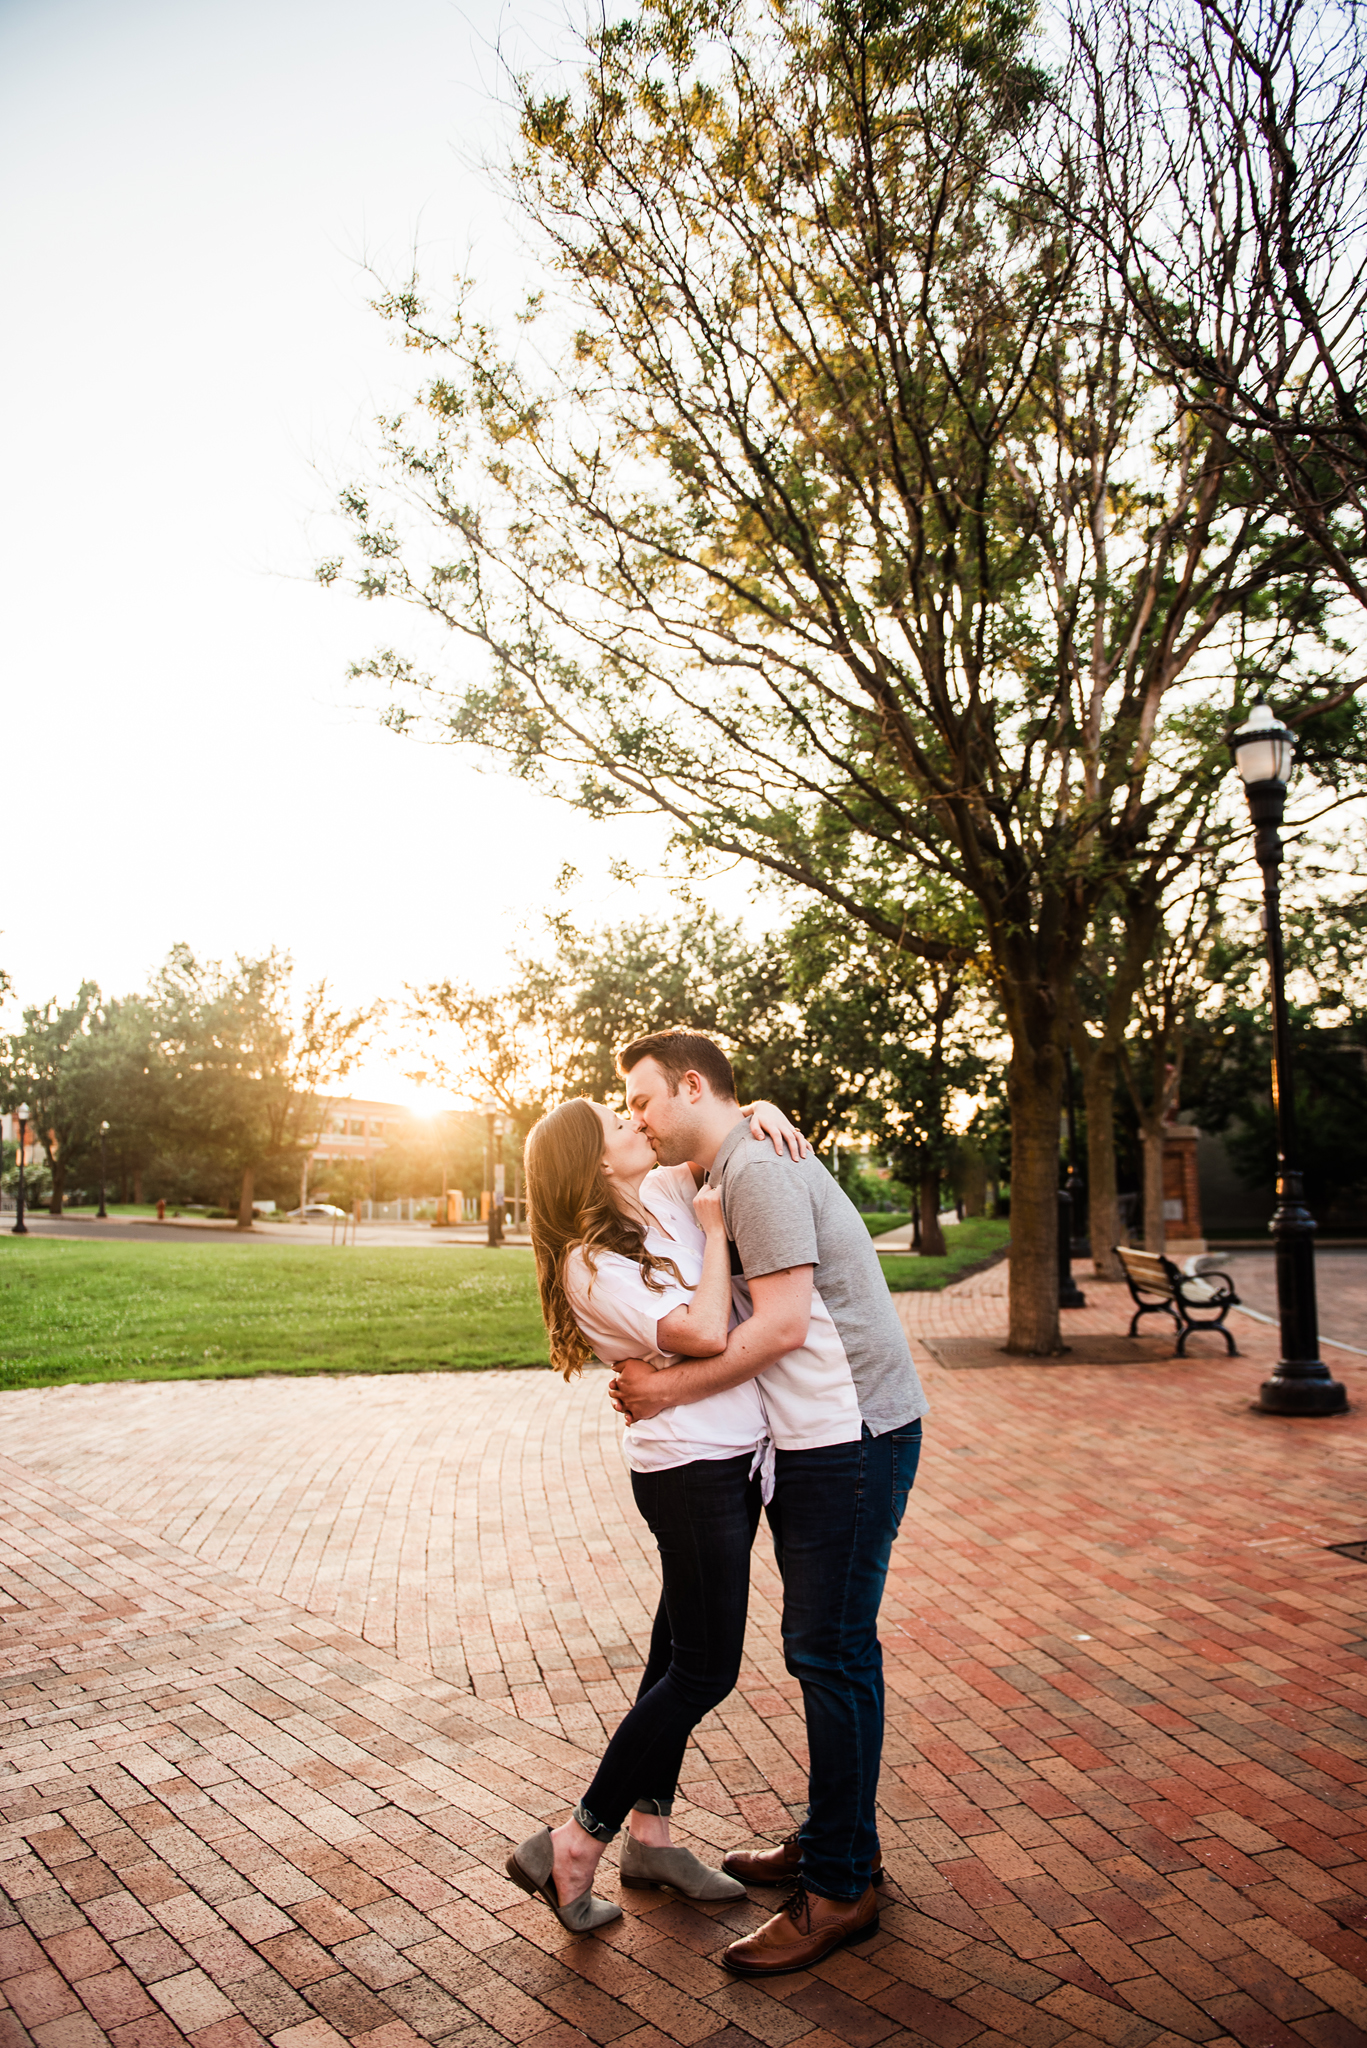 Franklin_Square_Park_Syracuse_Engagement_Session_JILL_STUDIO_Rochester_NY_Photographer_DSC_4249.jpg